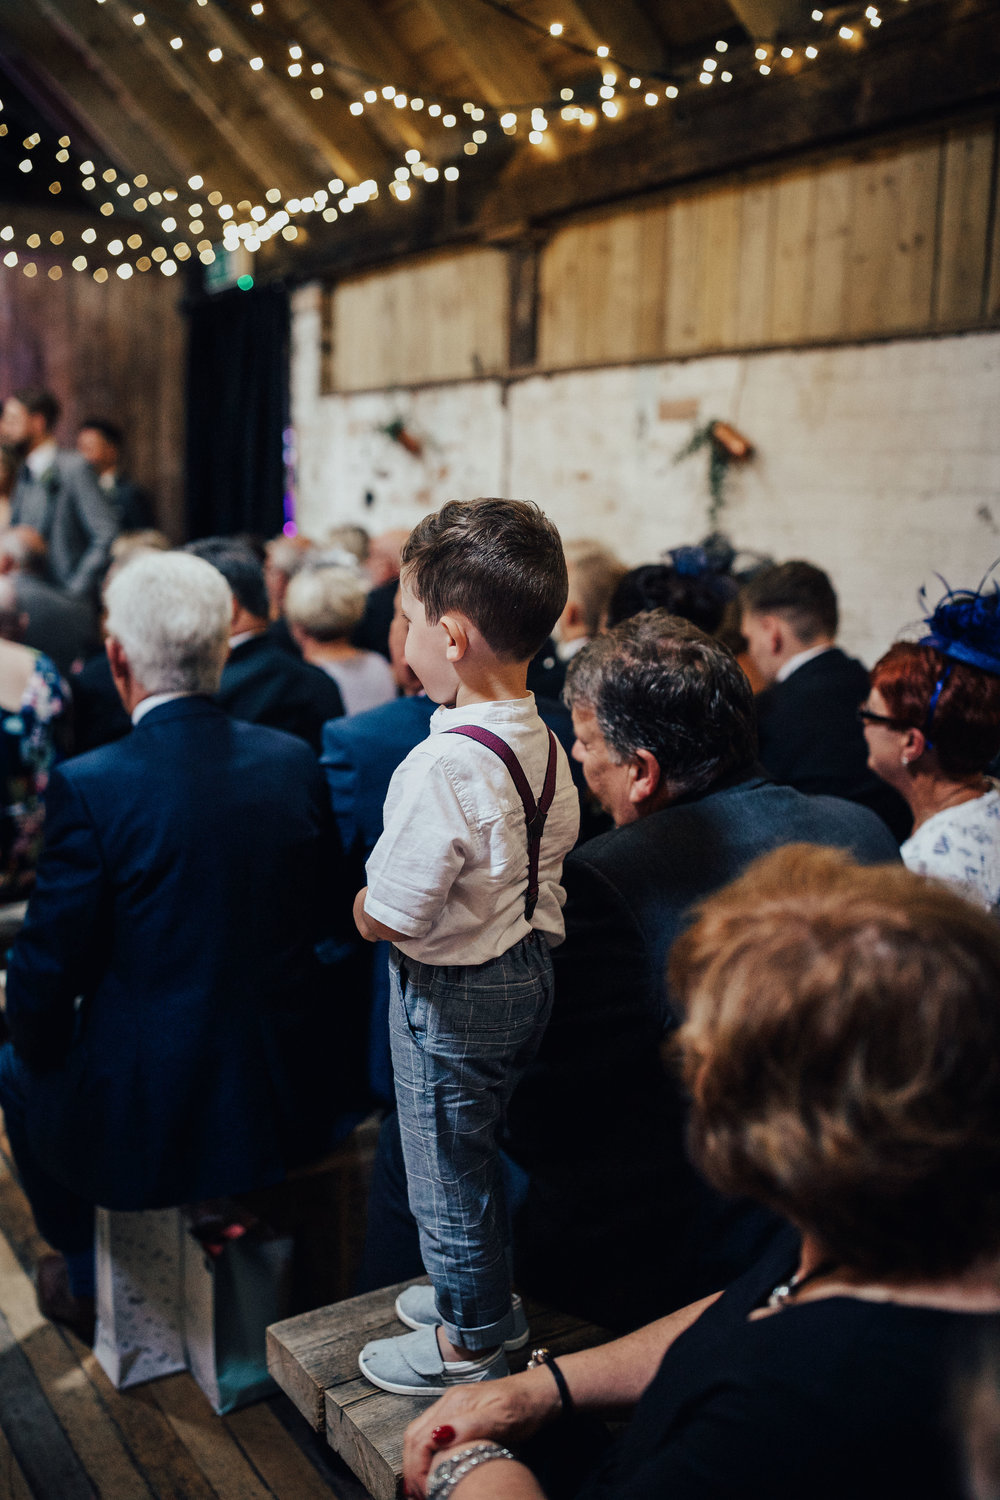 BYRE_AT_INCHYRA_WEDDING_PHOTOGRAPHER_PJ_PHILLIPS_PHOTOGRAPHY_KAYLEIGH_ANDREW_93.jpg